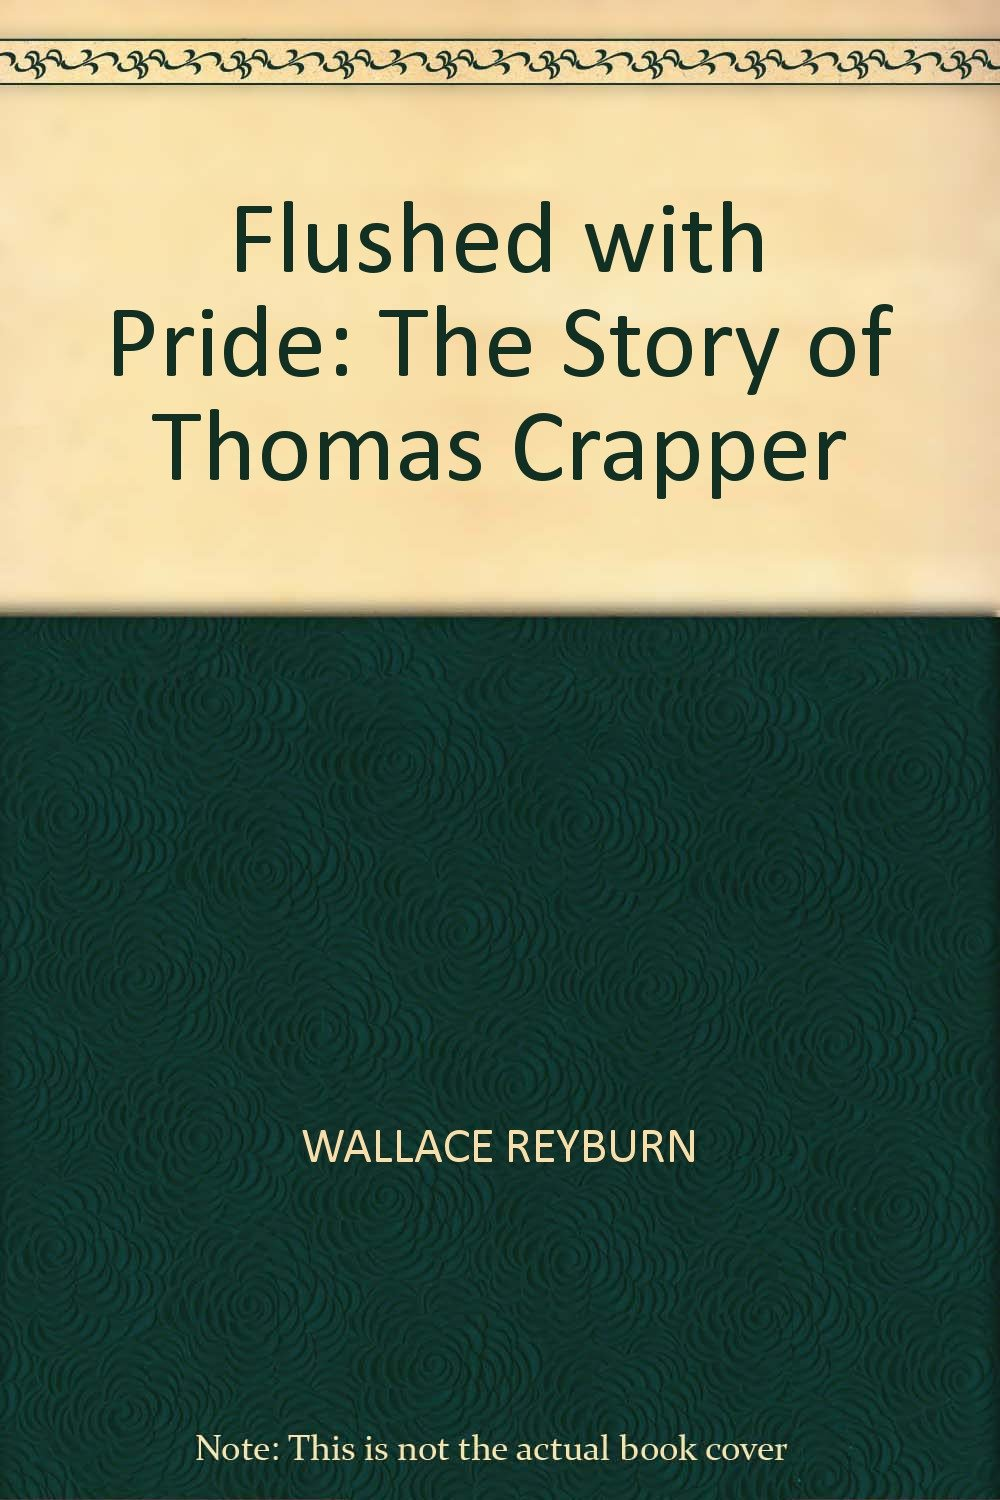 flushed-with-pride-the-story-of-thomas-crapper